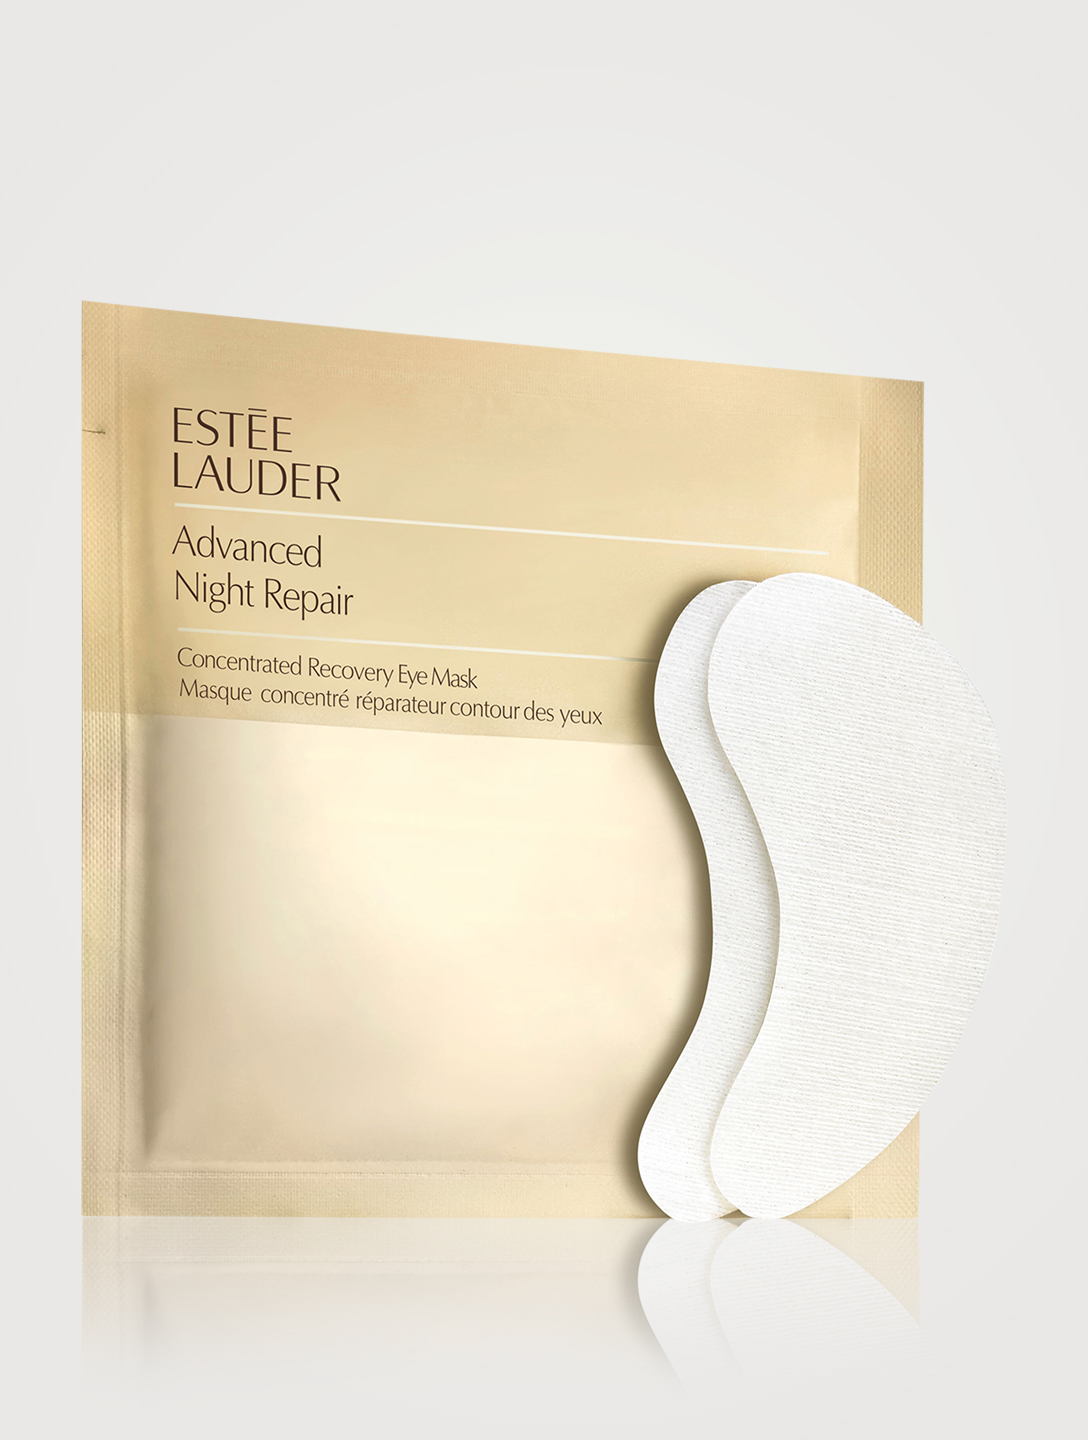 ESTÉE LAUDER Advanced Night Repair Concentrated Recovery Eye Mask Beauty